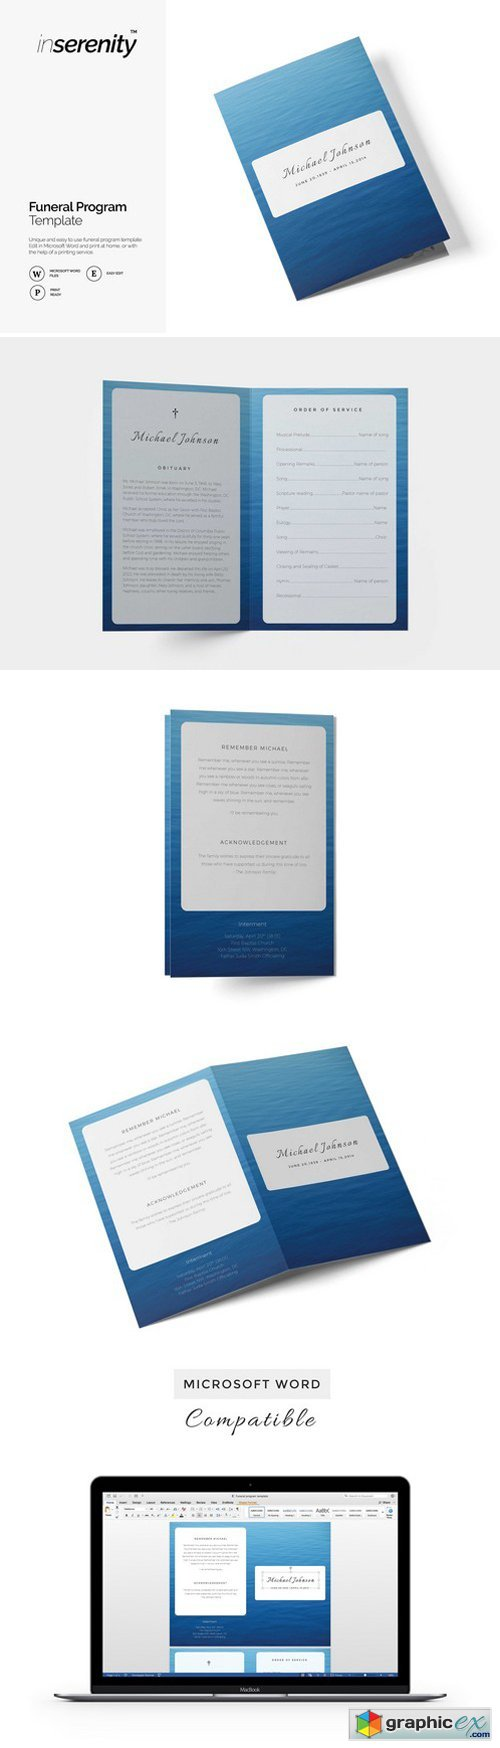 Funeral Program Template Blue Ocean Free Download Vector Stock